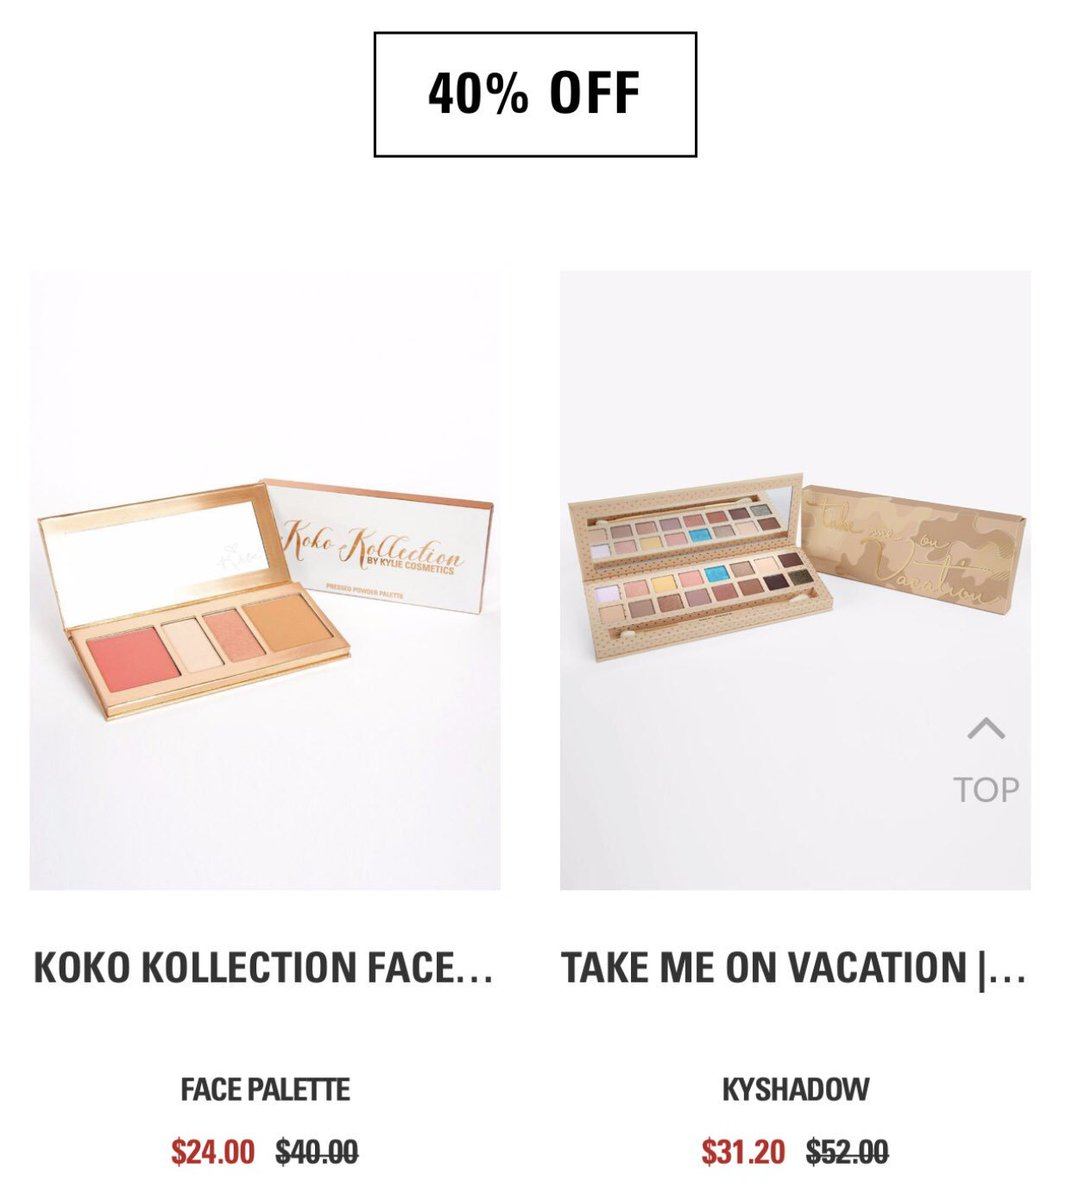 My Koko face palette is 40% off in the @kyliecosmetics Labor Day weekend sale at https://t.co/8Tz1bLoLTe ❤️???????? https://t.co/YKGjrqUJBx